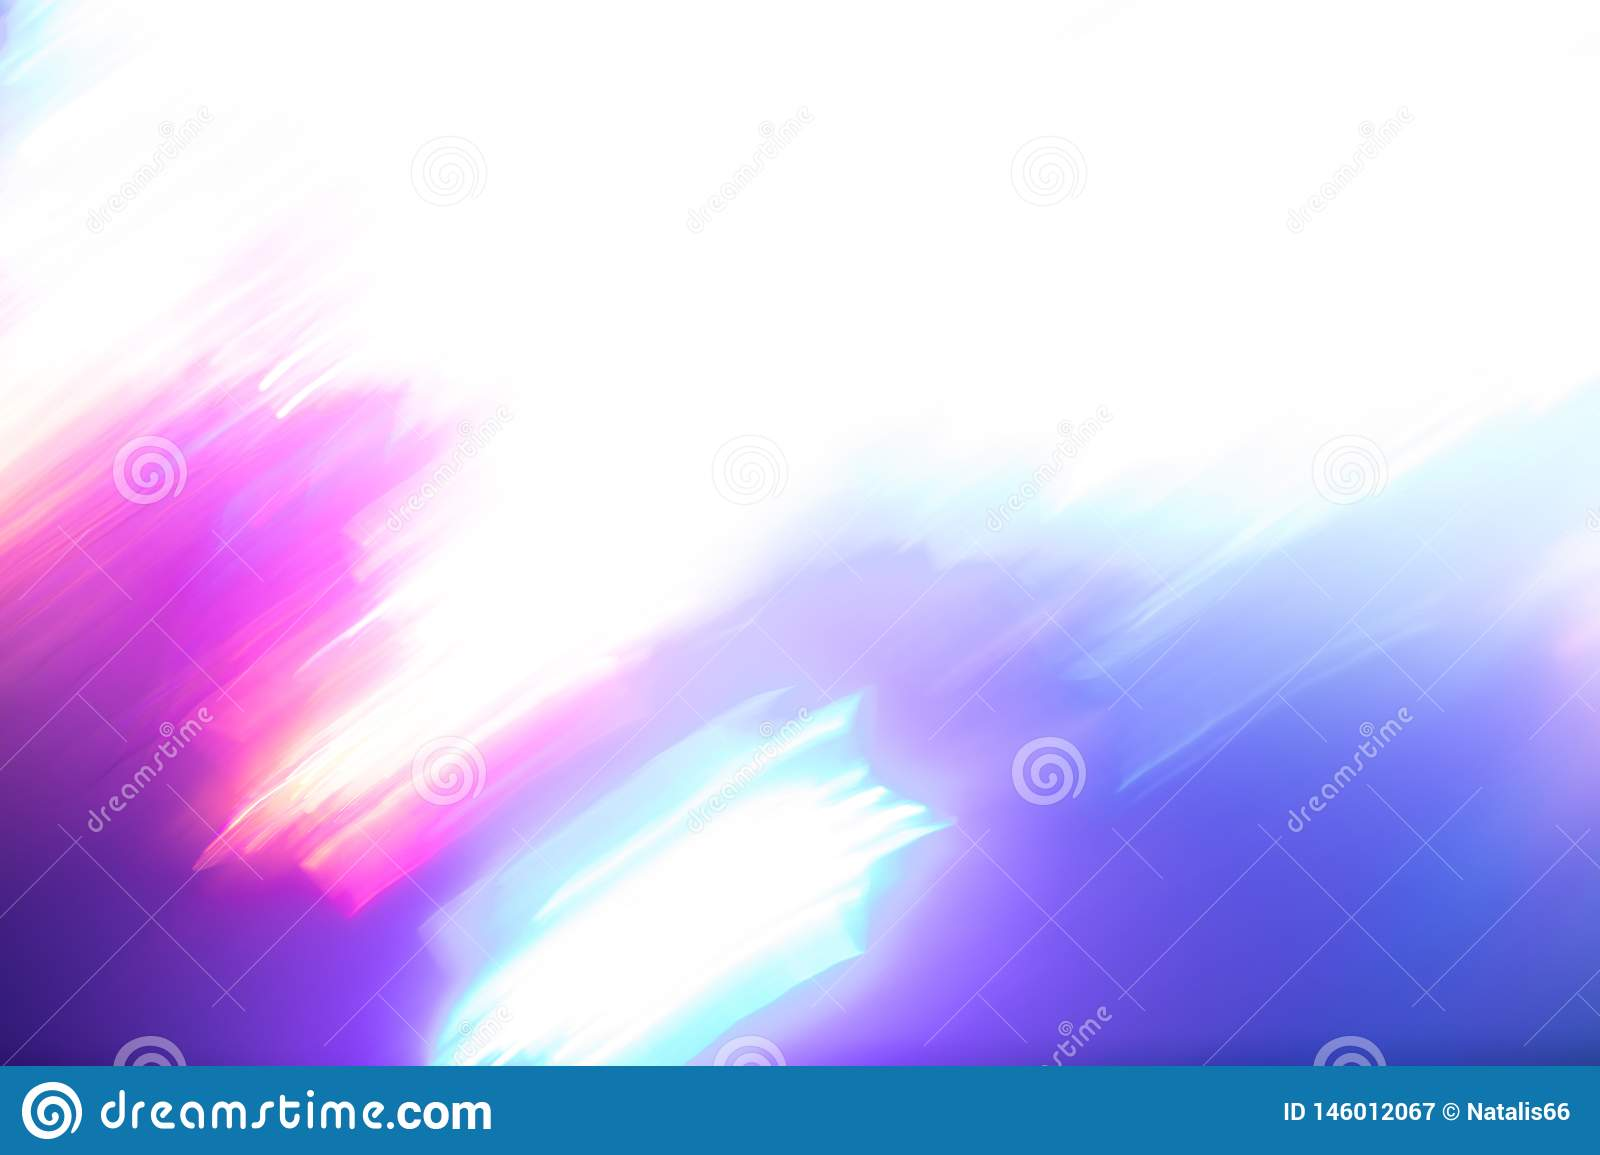 Blurred white-pink-purple-turquoise background of bright neon lights of trendy colors.